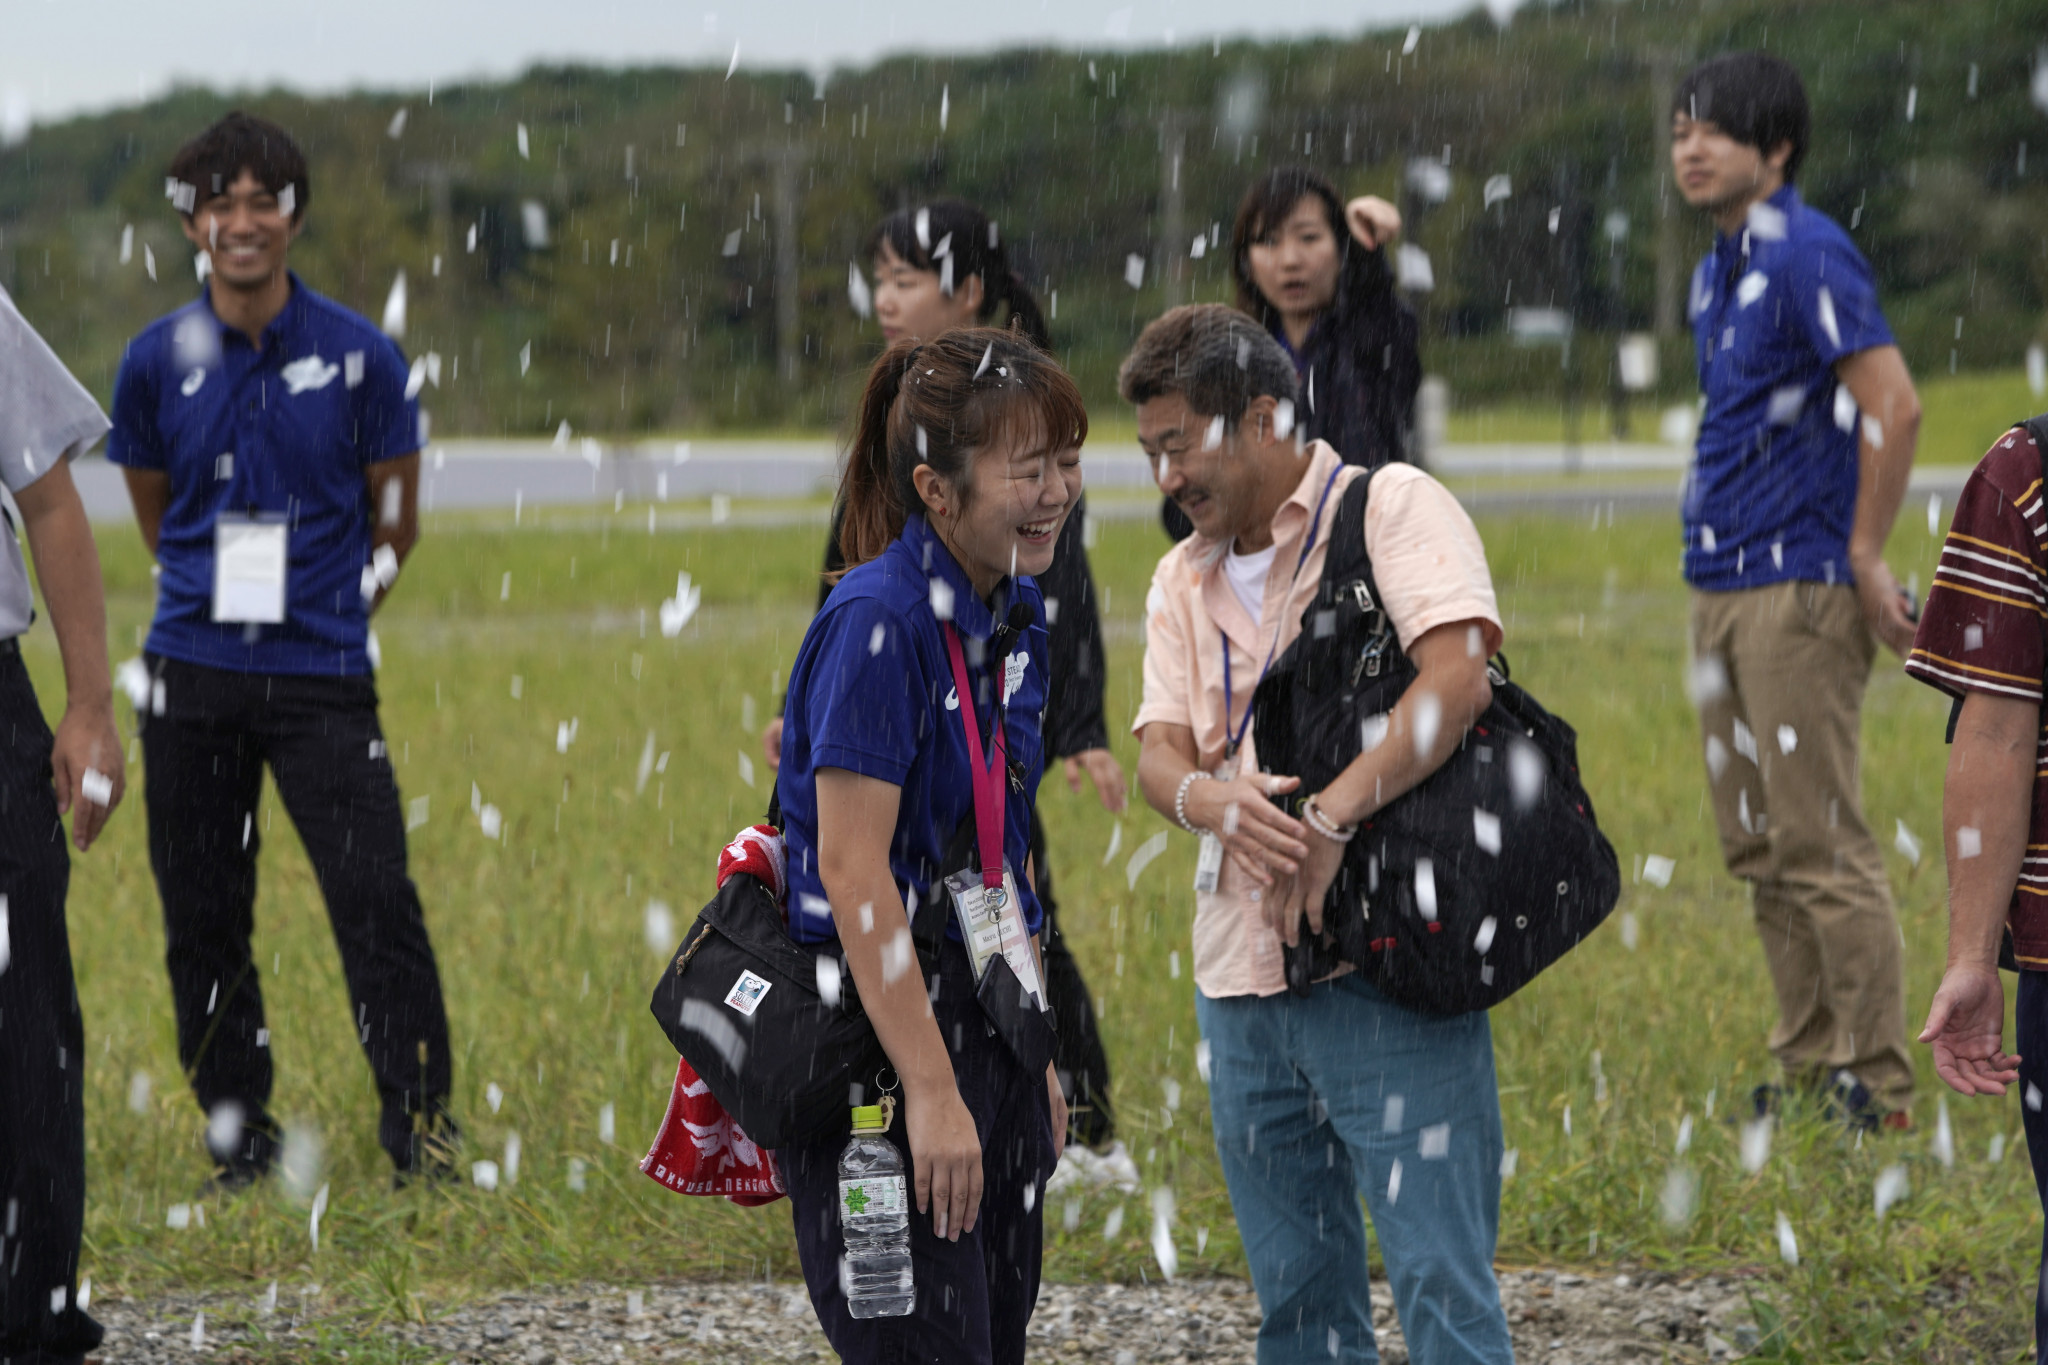 Using machines to deploy fake snow as a cooling method are among measures being considered by Tokyo 2020 ©Getty Images